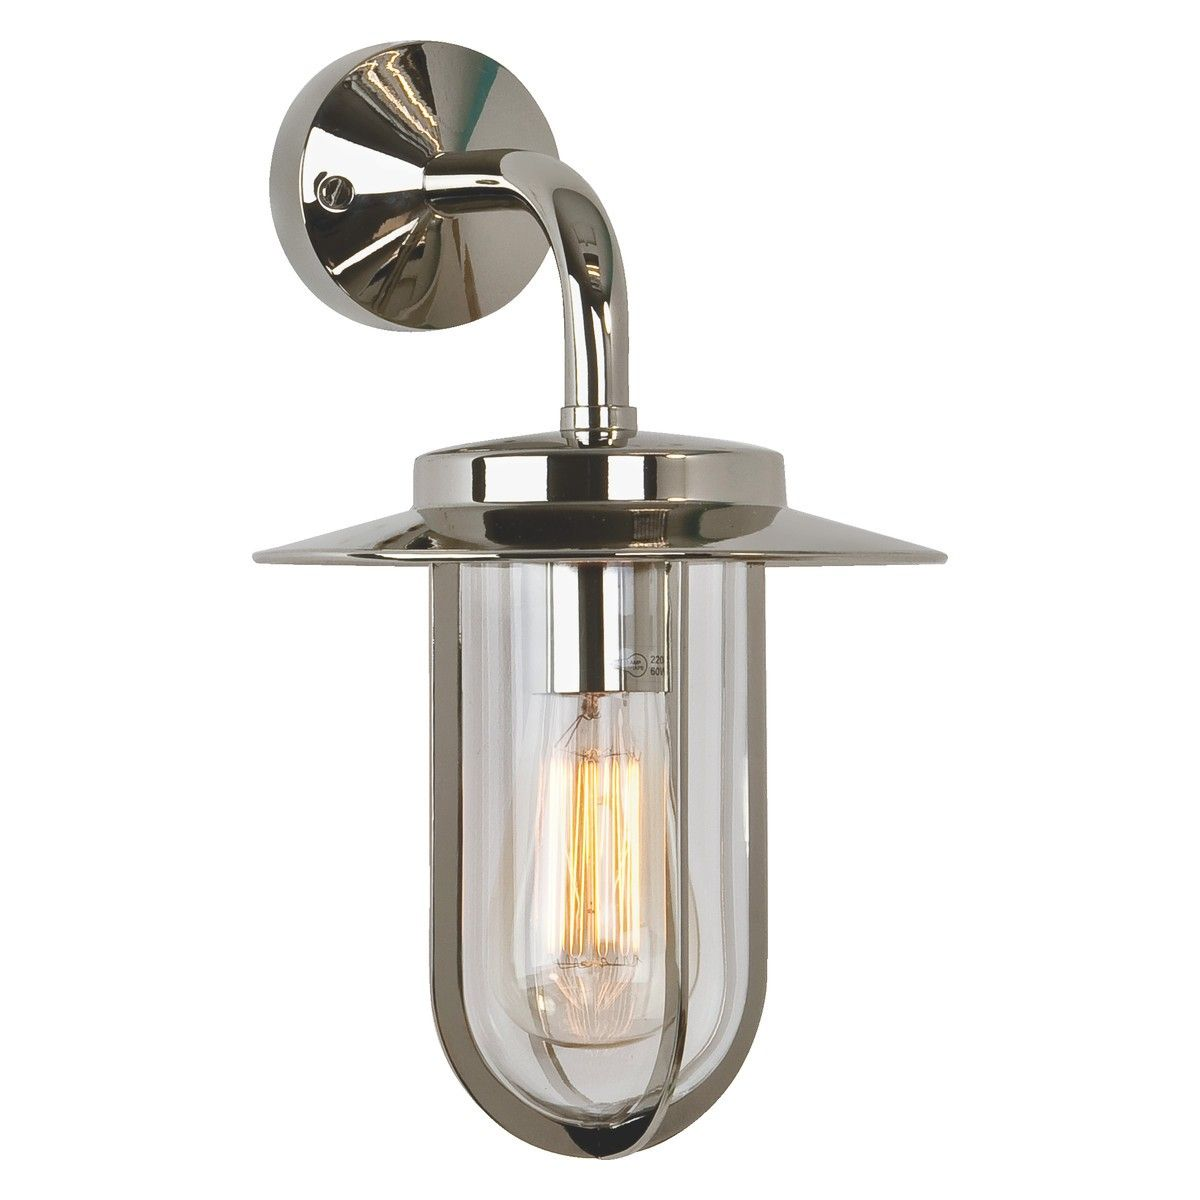 Montparnasse glass and metal outdoor wall light ip44 buy now at montparnasse glass and metal outdoor wall light ip44 buy now at habitat uk workwithnaturefo